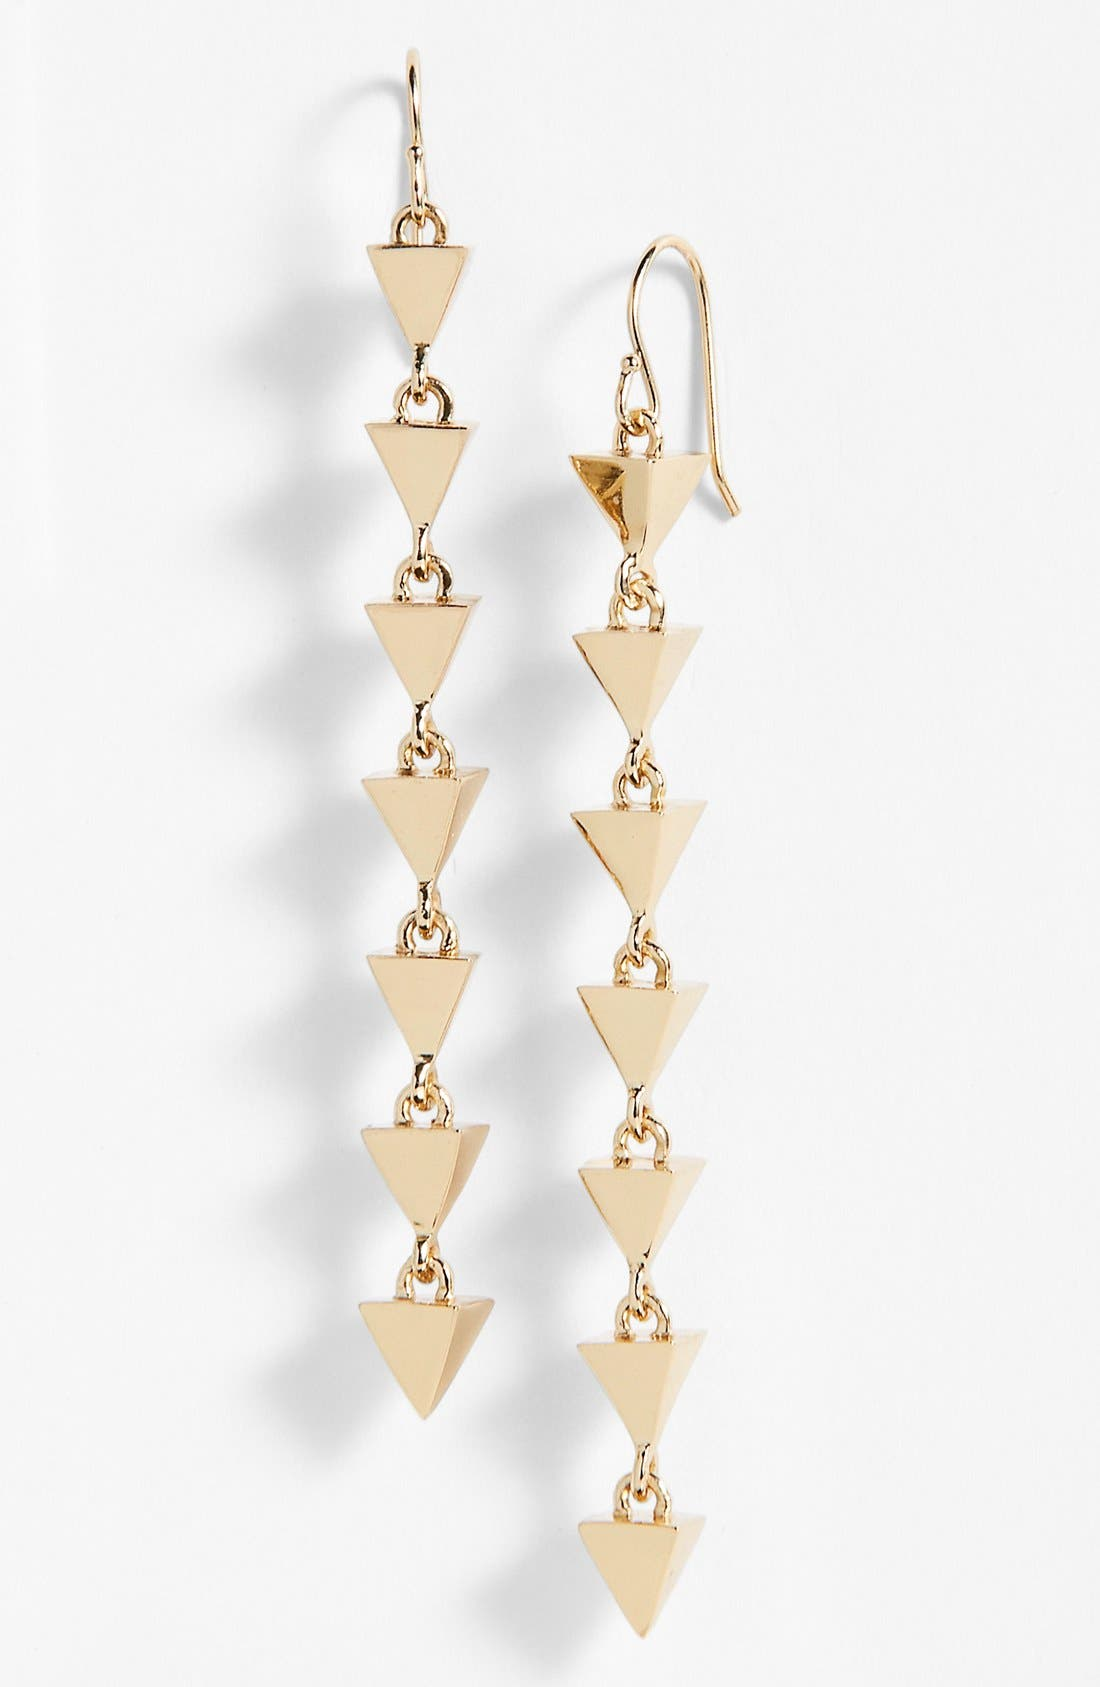 Main Image - Melinda Maria 'Pyramid' Linear Earrings